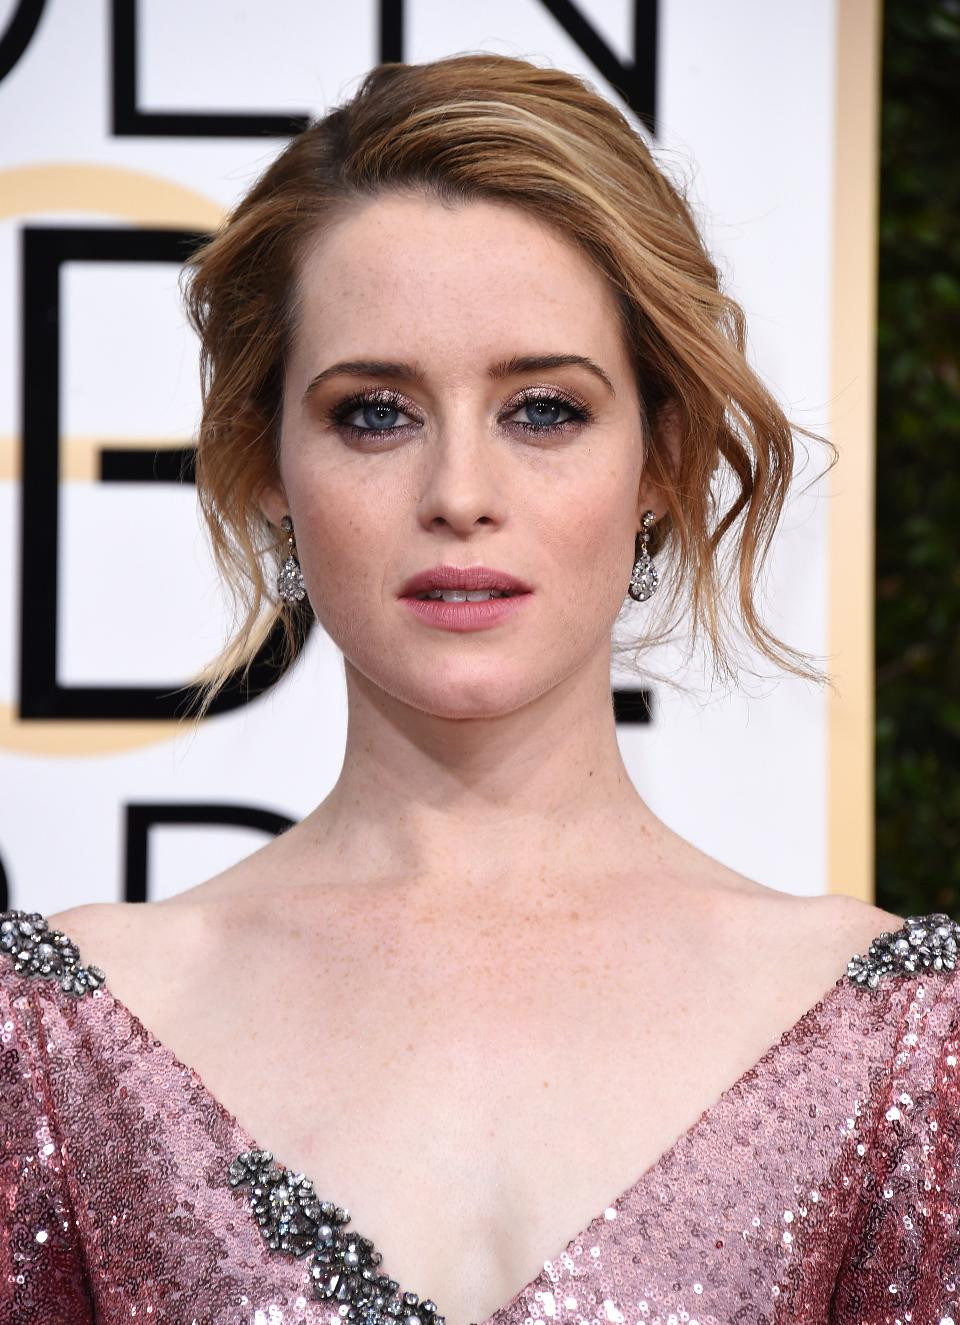 Claire Foy wearing antique diamond earrings